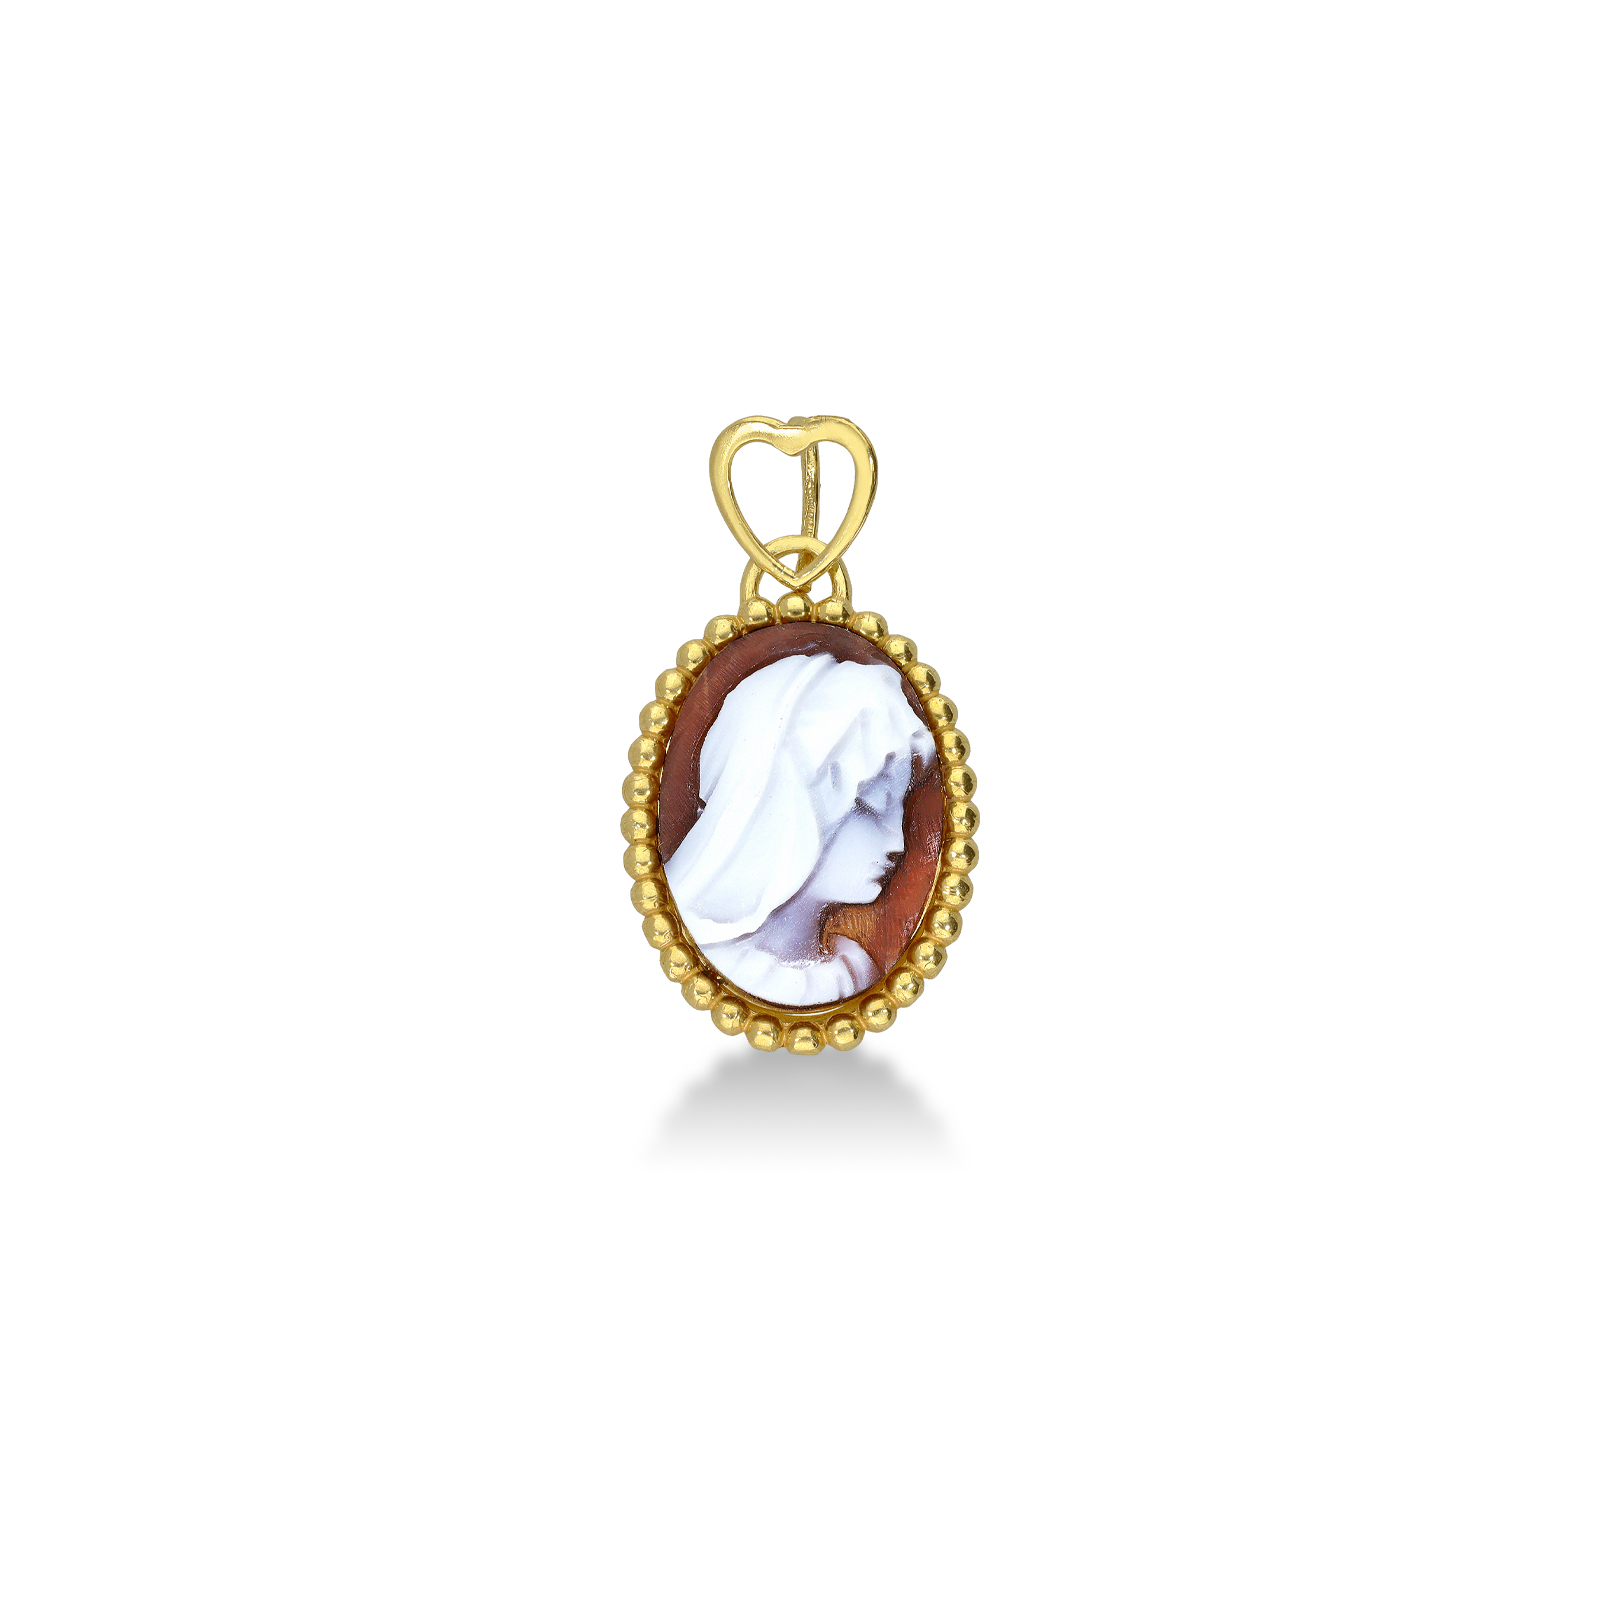 Pendant 18k Gold with Cameo